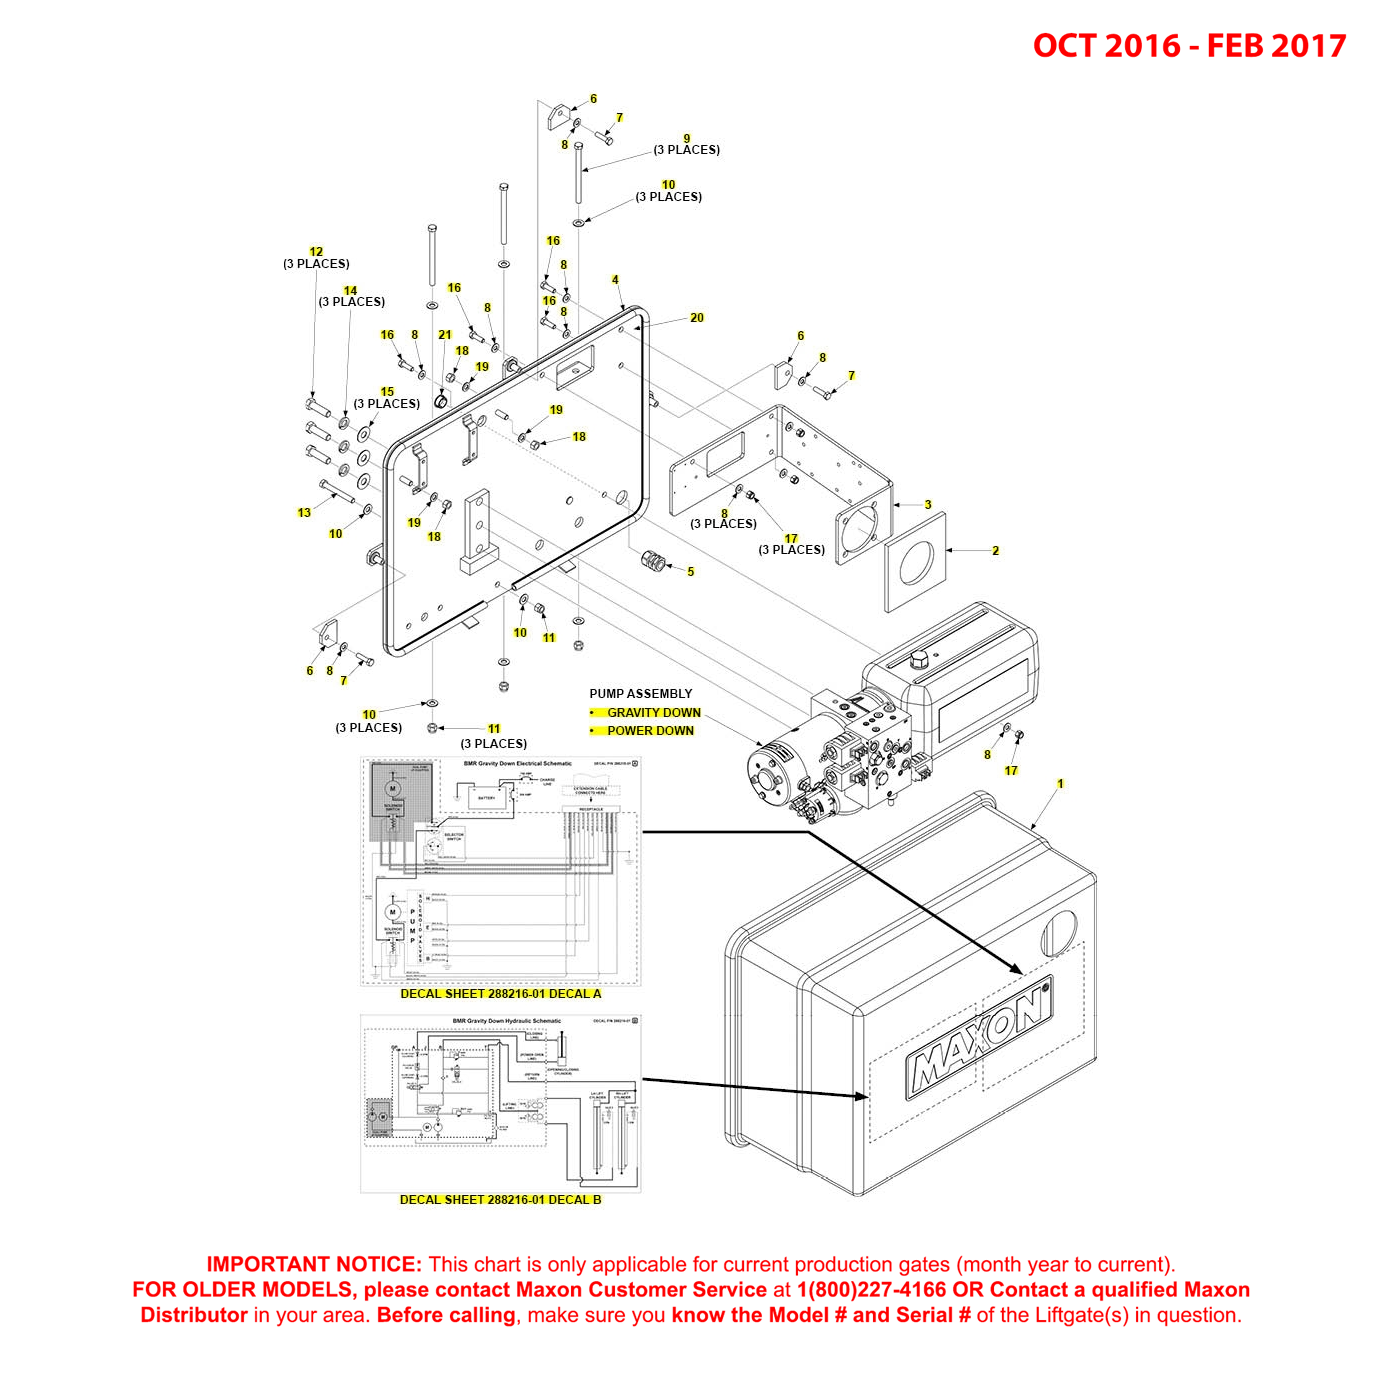 BMR-CS (Oct 2016 - Feb 2017) MTE Hydraulics Pump Cover And Mounting Plate Assembly Diagram